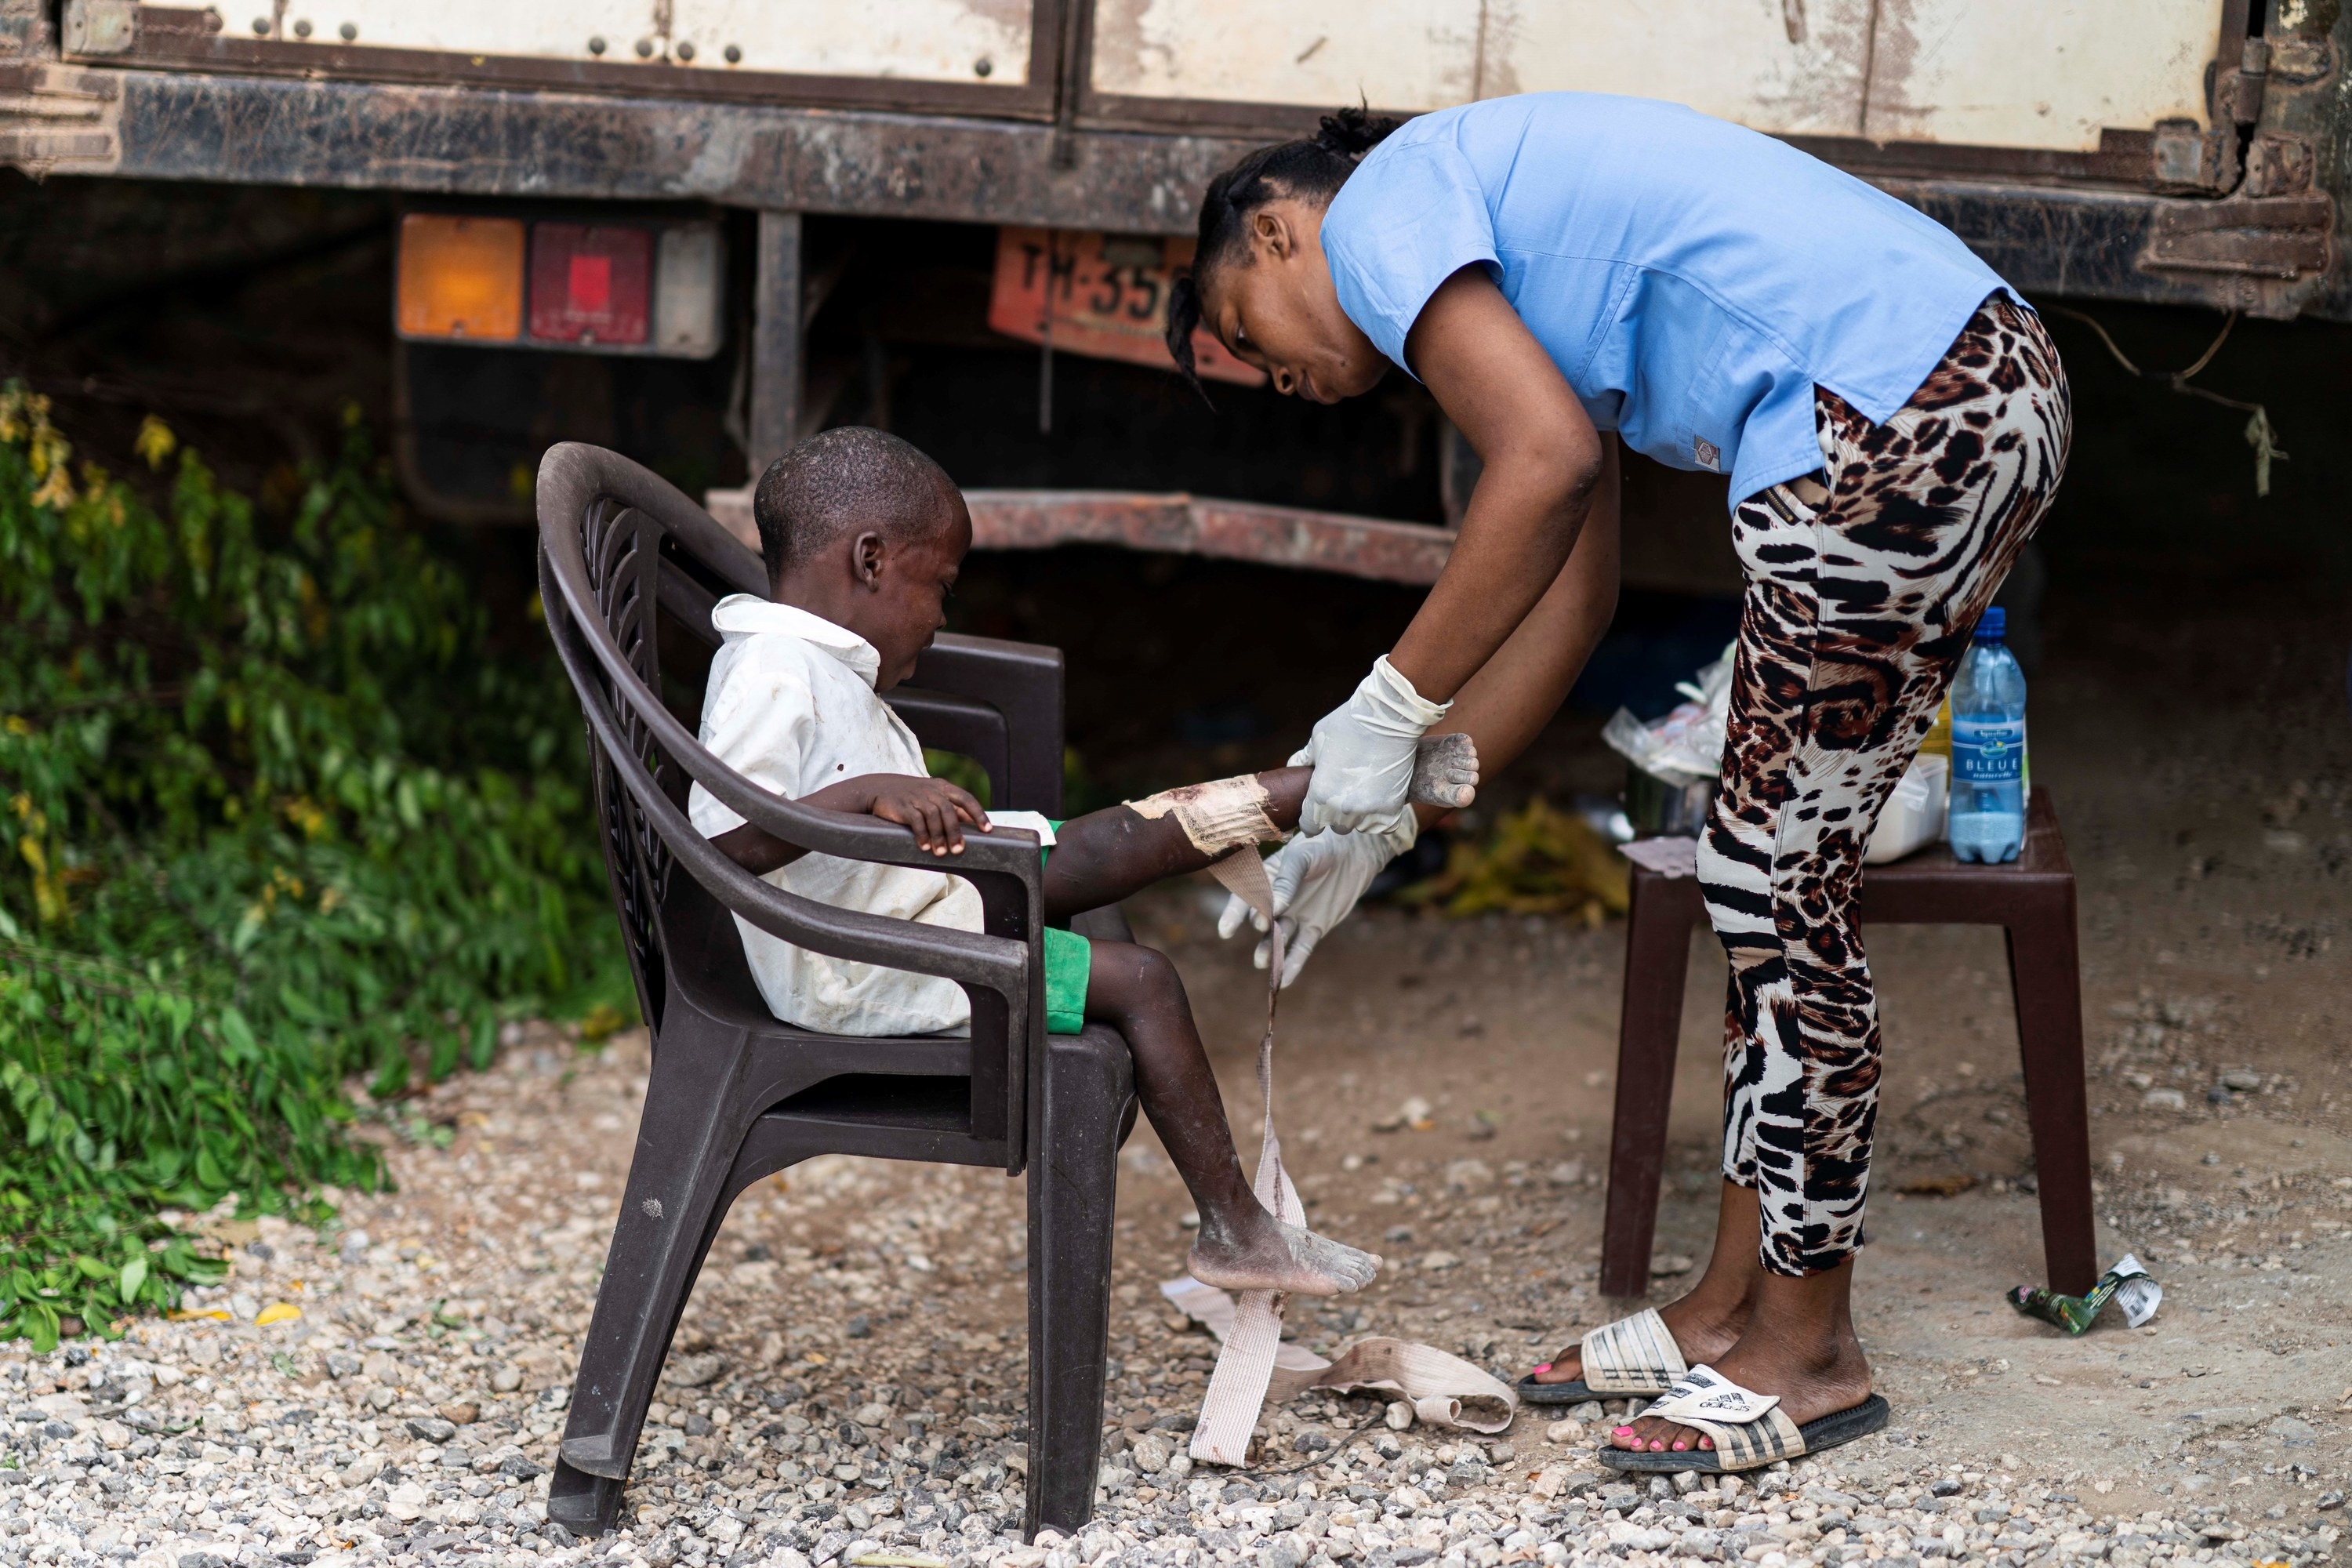 A young Haitian child cries while a medical worker wraps their leg with gauze